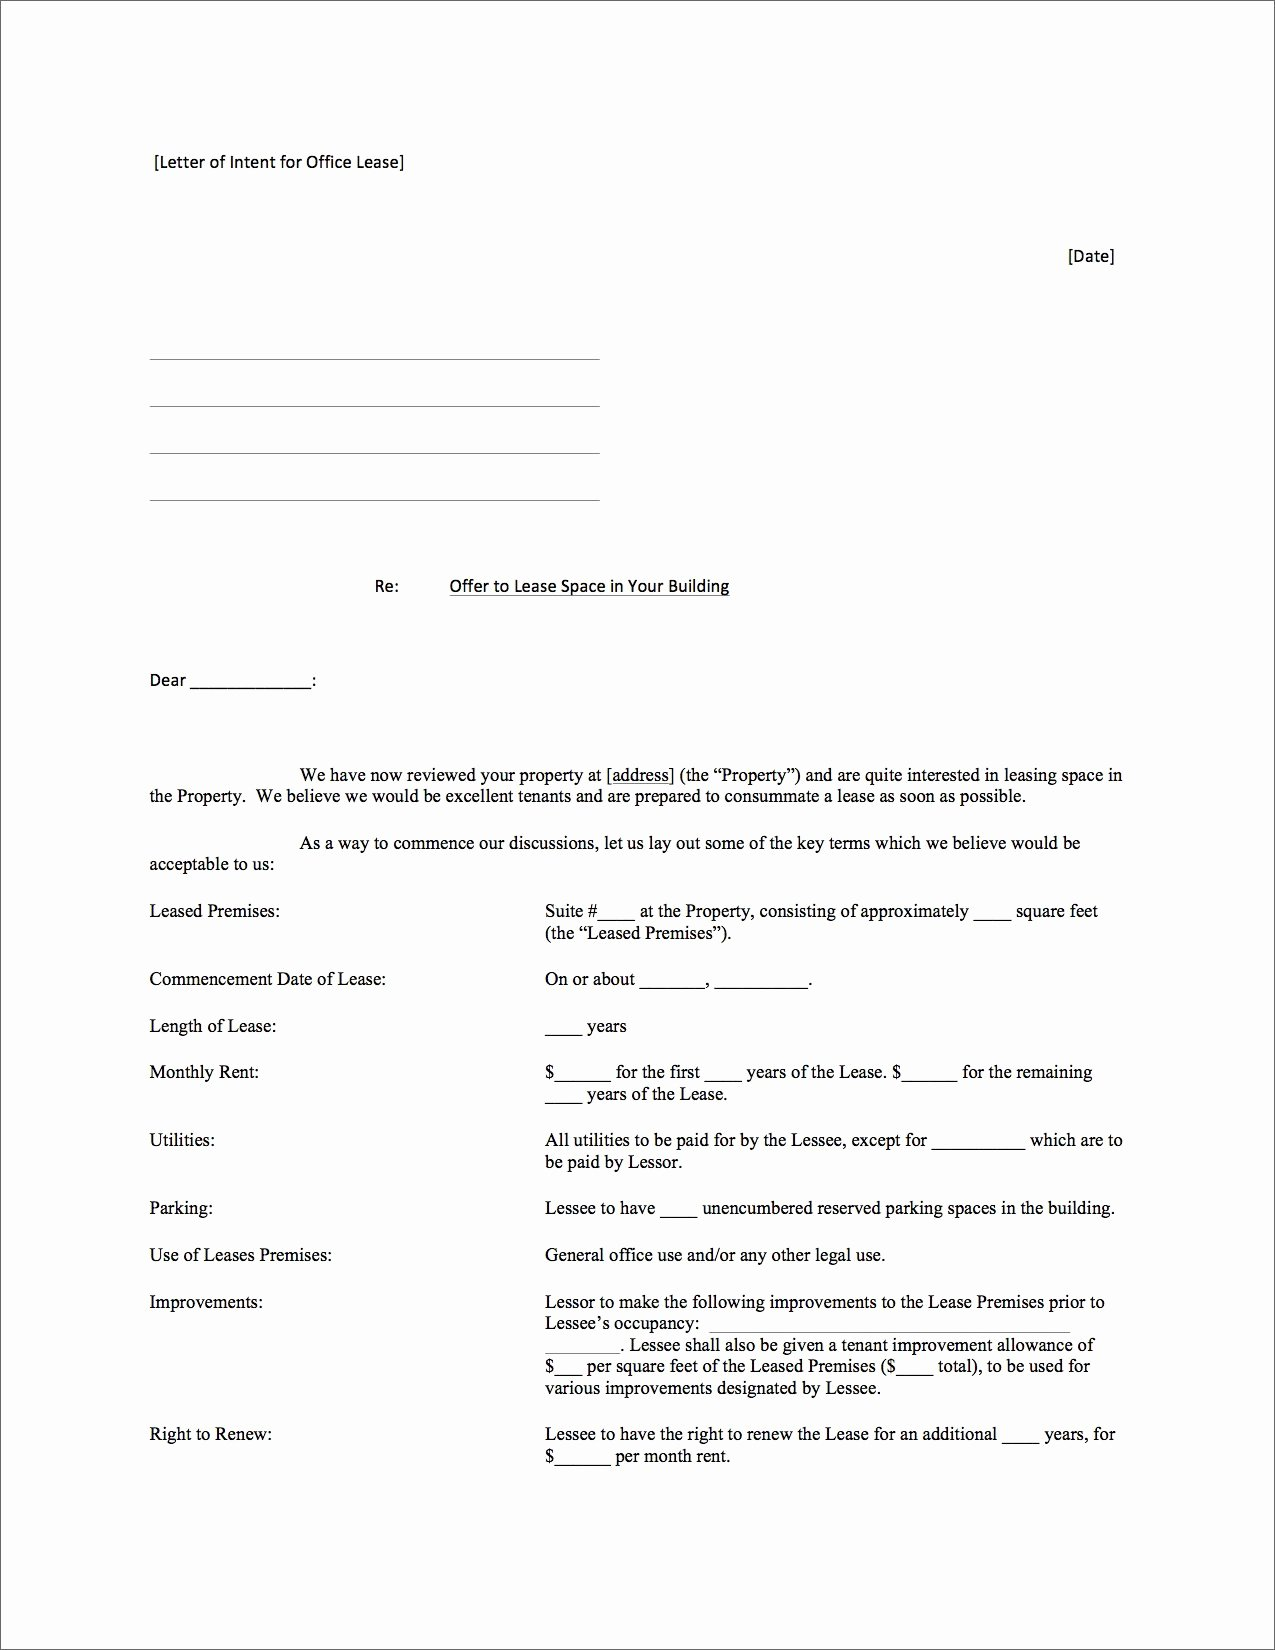 Letter Of Intent for Leasing Commercial Space New How to Negotiate the Best Fice Lease for Your Startup